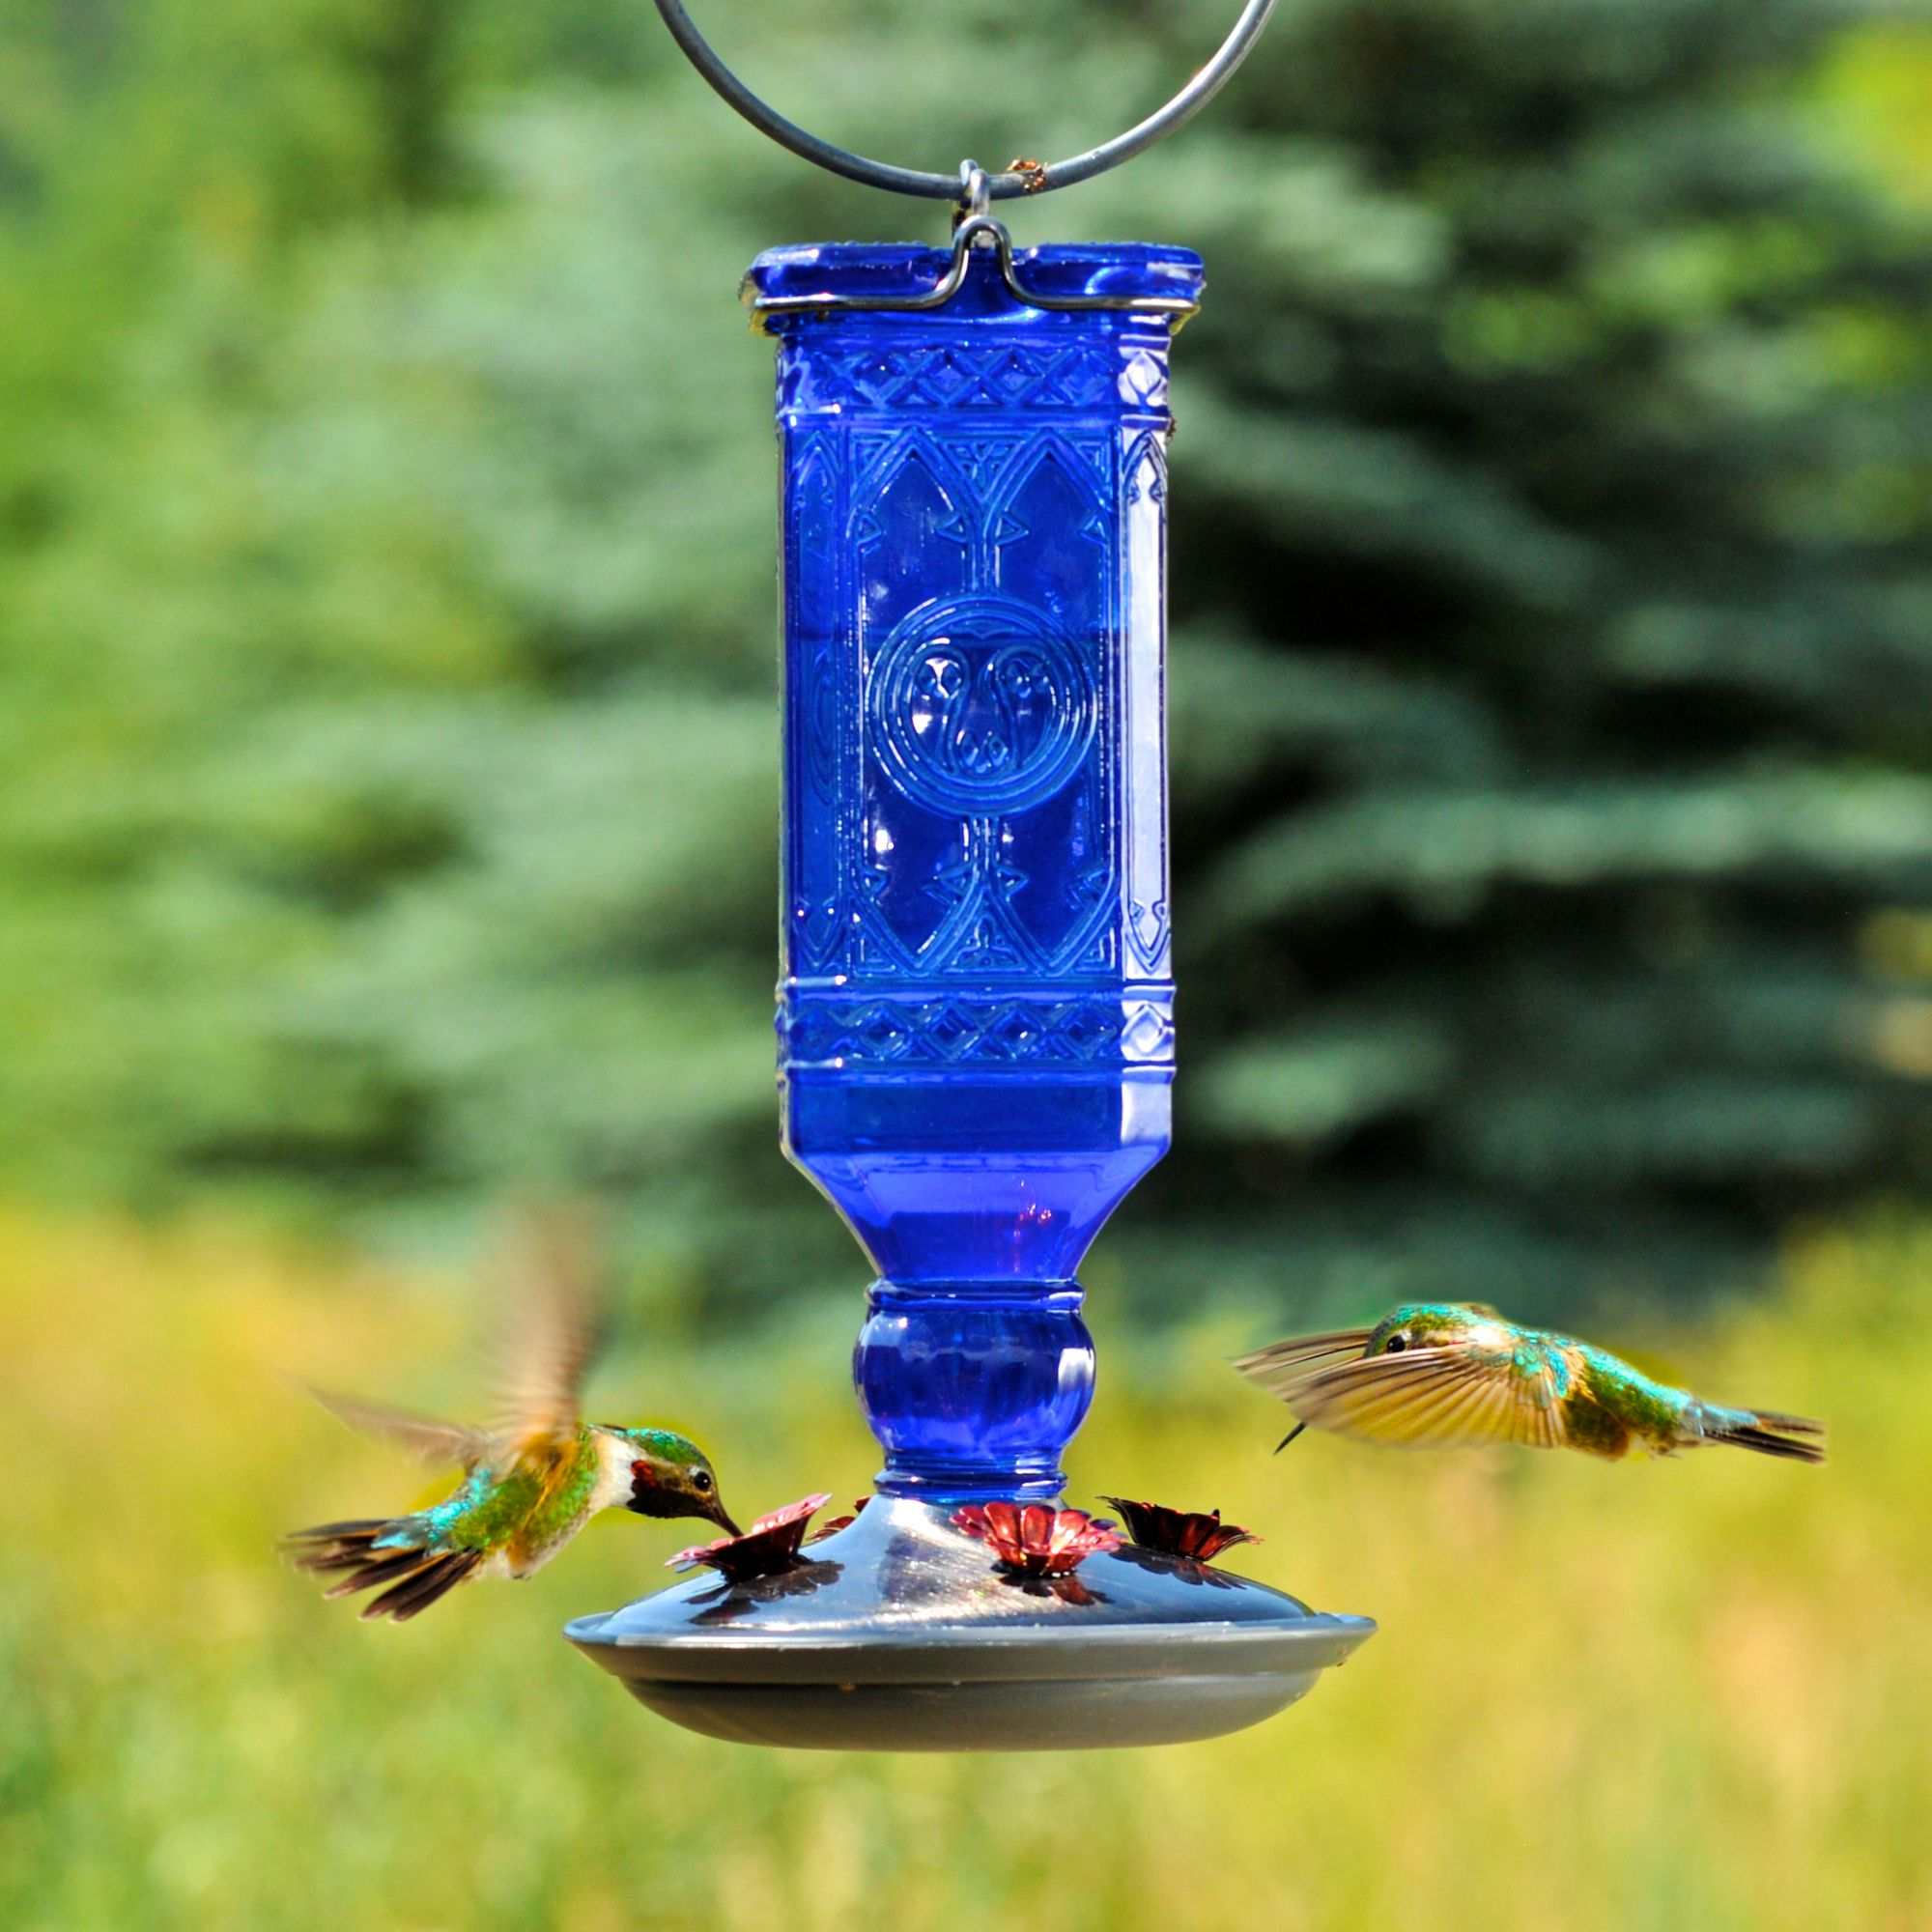 unique hummingbird and glass ounces decorative premium feeder feeders natures bird home by red best globe product products nectar hand yellow with blown hummingbirds of pet reviews rave birds